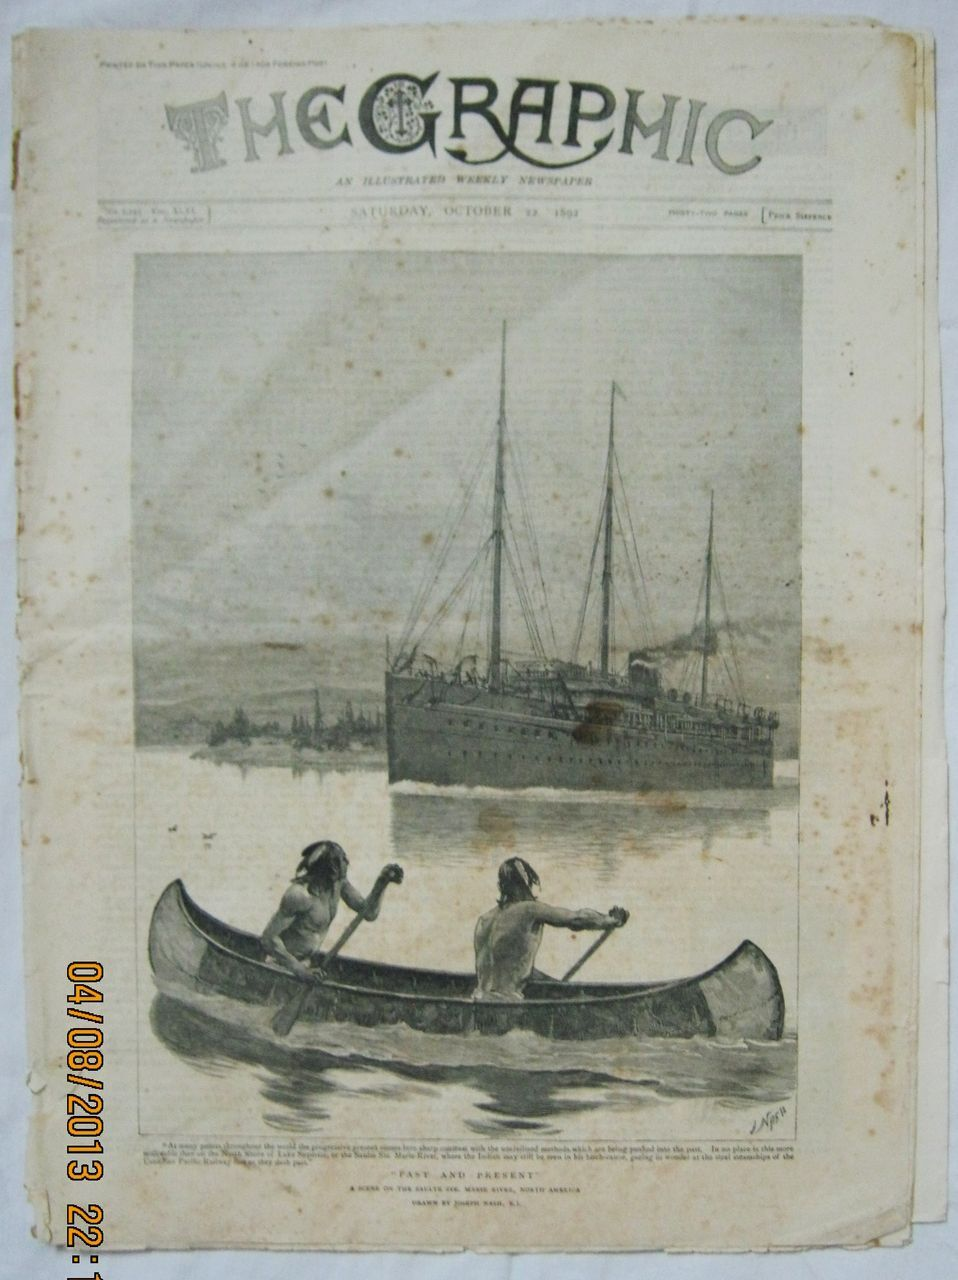 Past & Present - A Salute on The Ste. River -The Graphic 1892